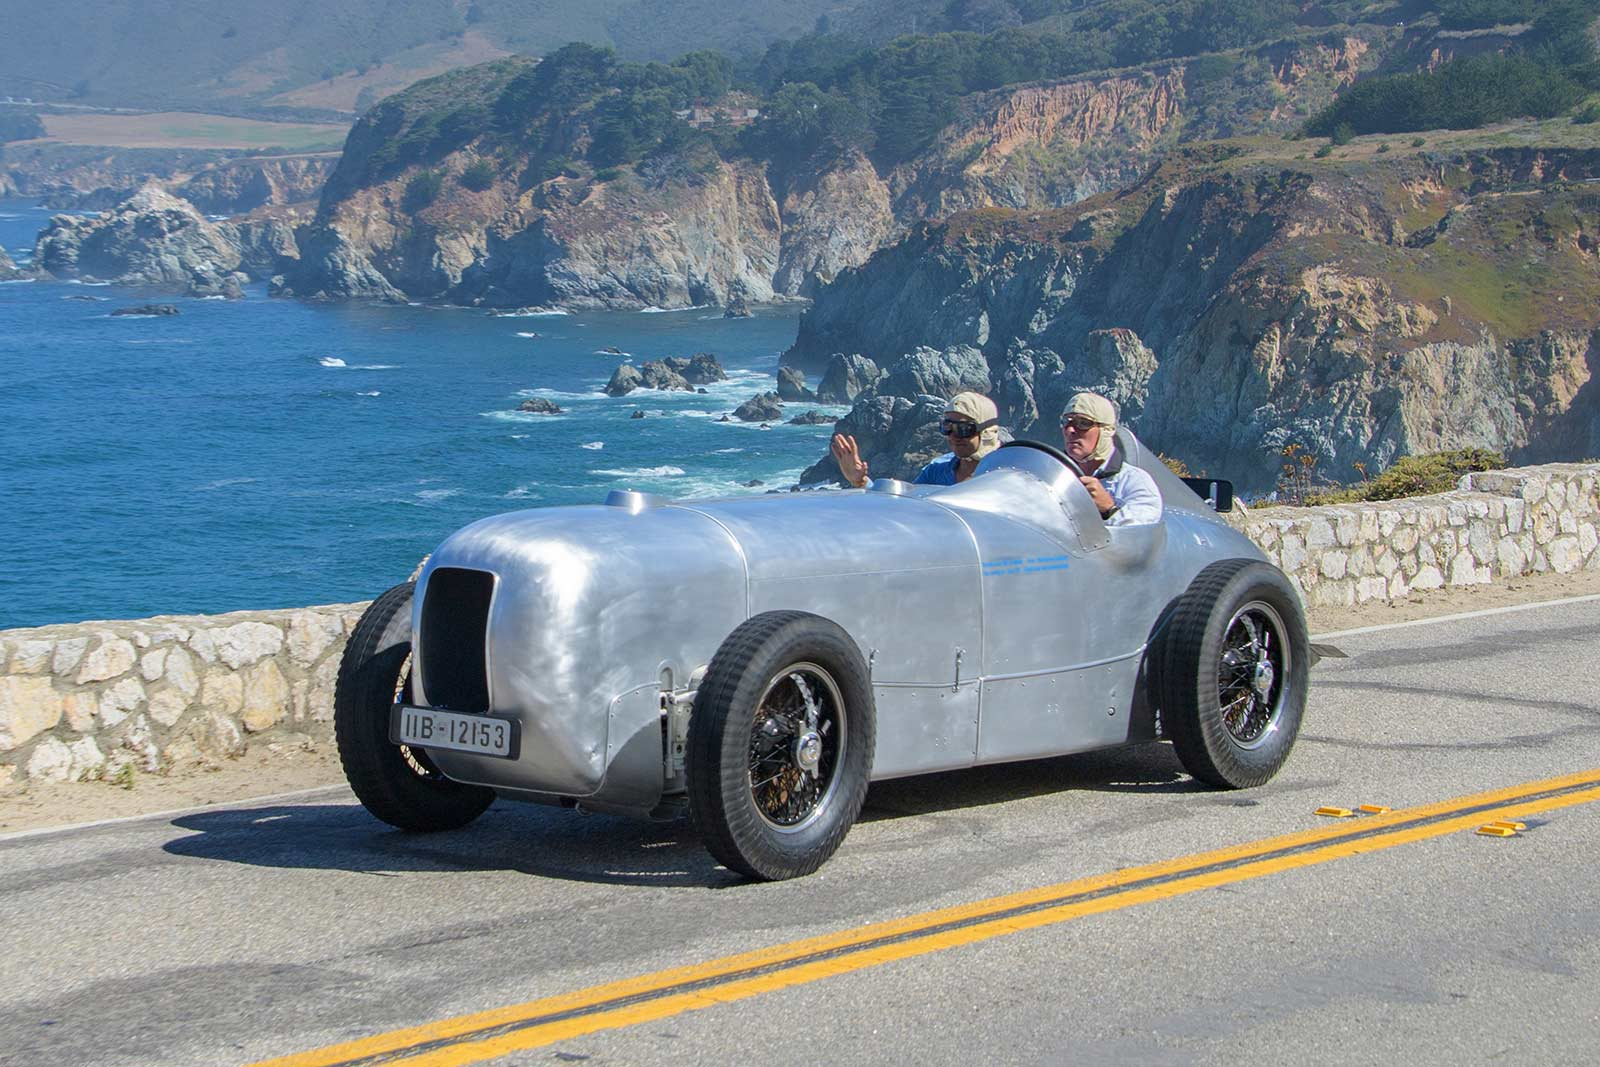 The Pebble Beach Tour d'Elegance driving down Highway 1 in Big Sur, CA.